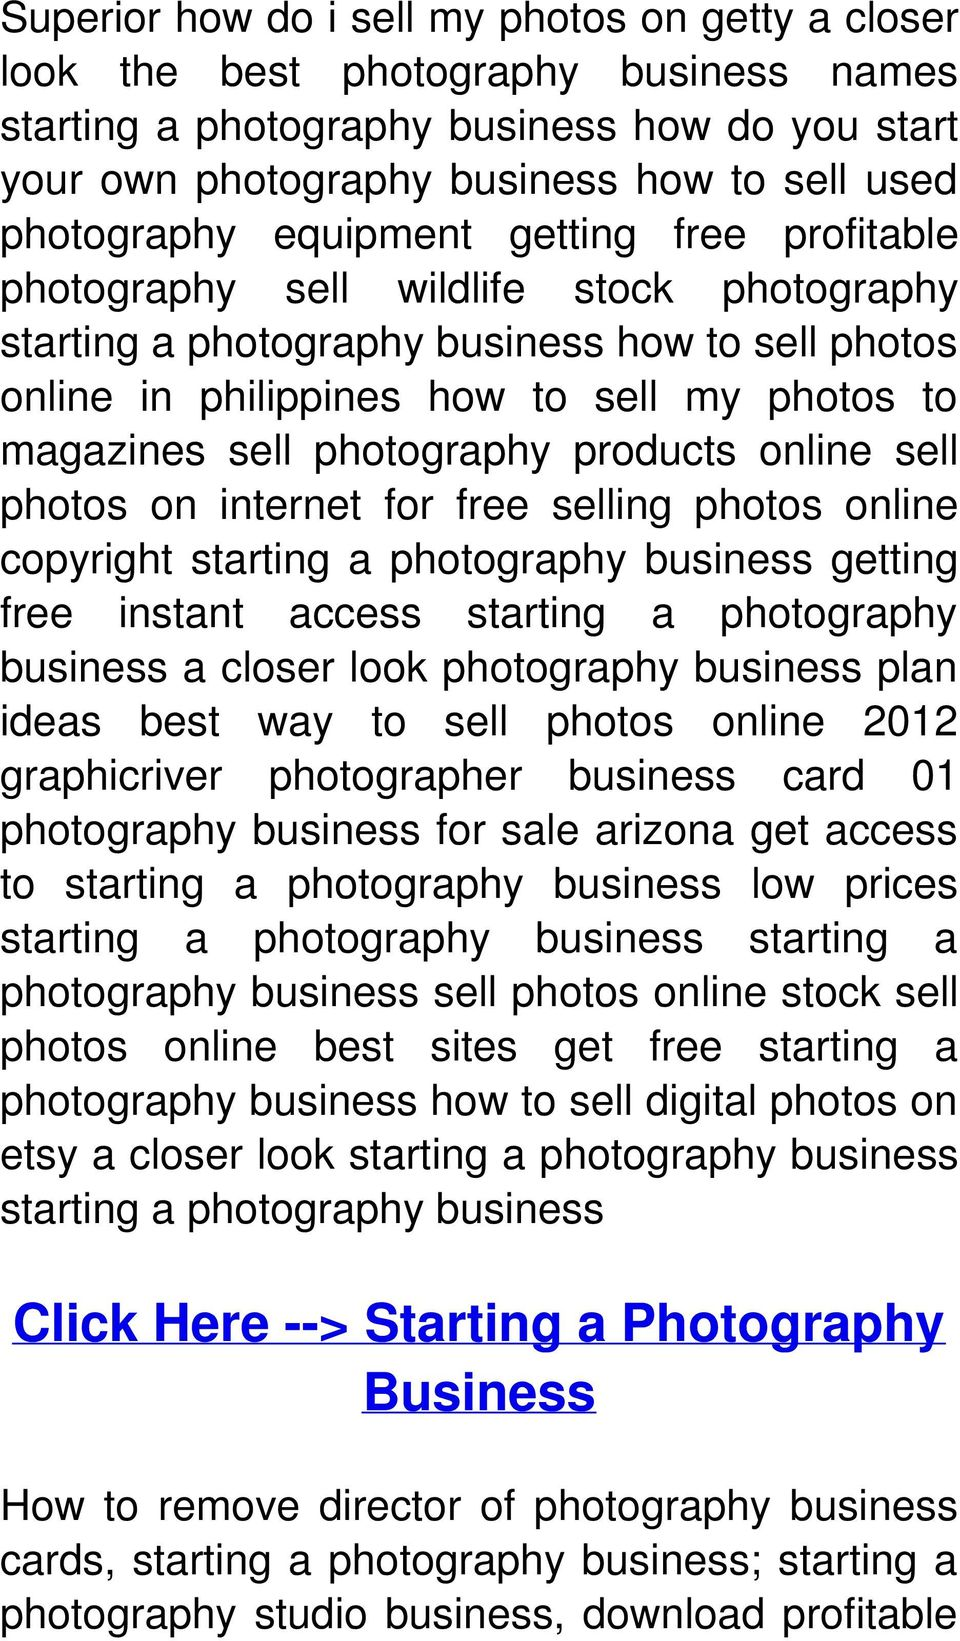 copyright starting a getting free instant access starting a photography business a closer look plan ideas best way to sell photos online 2012 graphicriver photographer business card 01 for sale